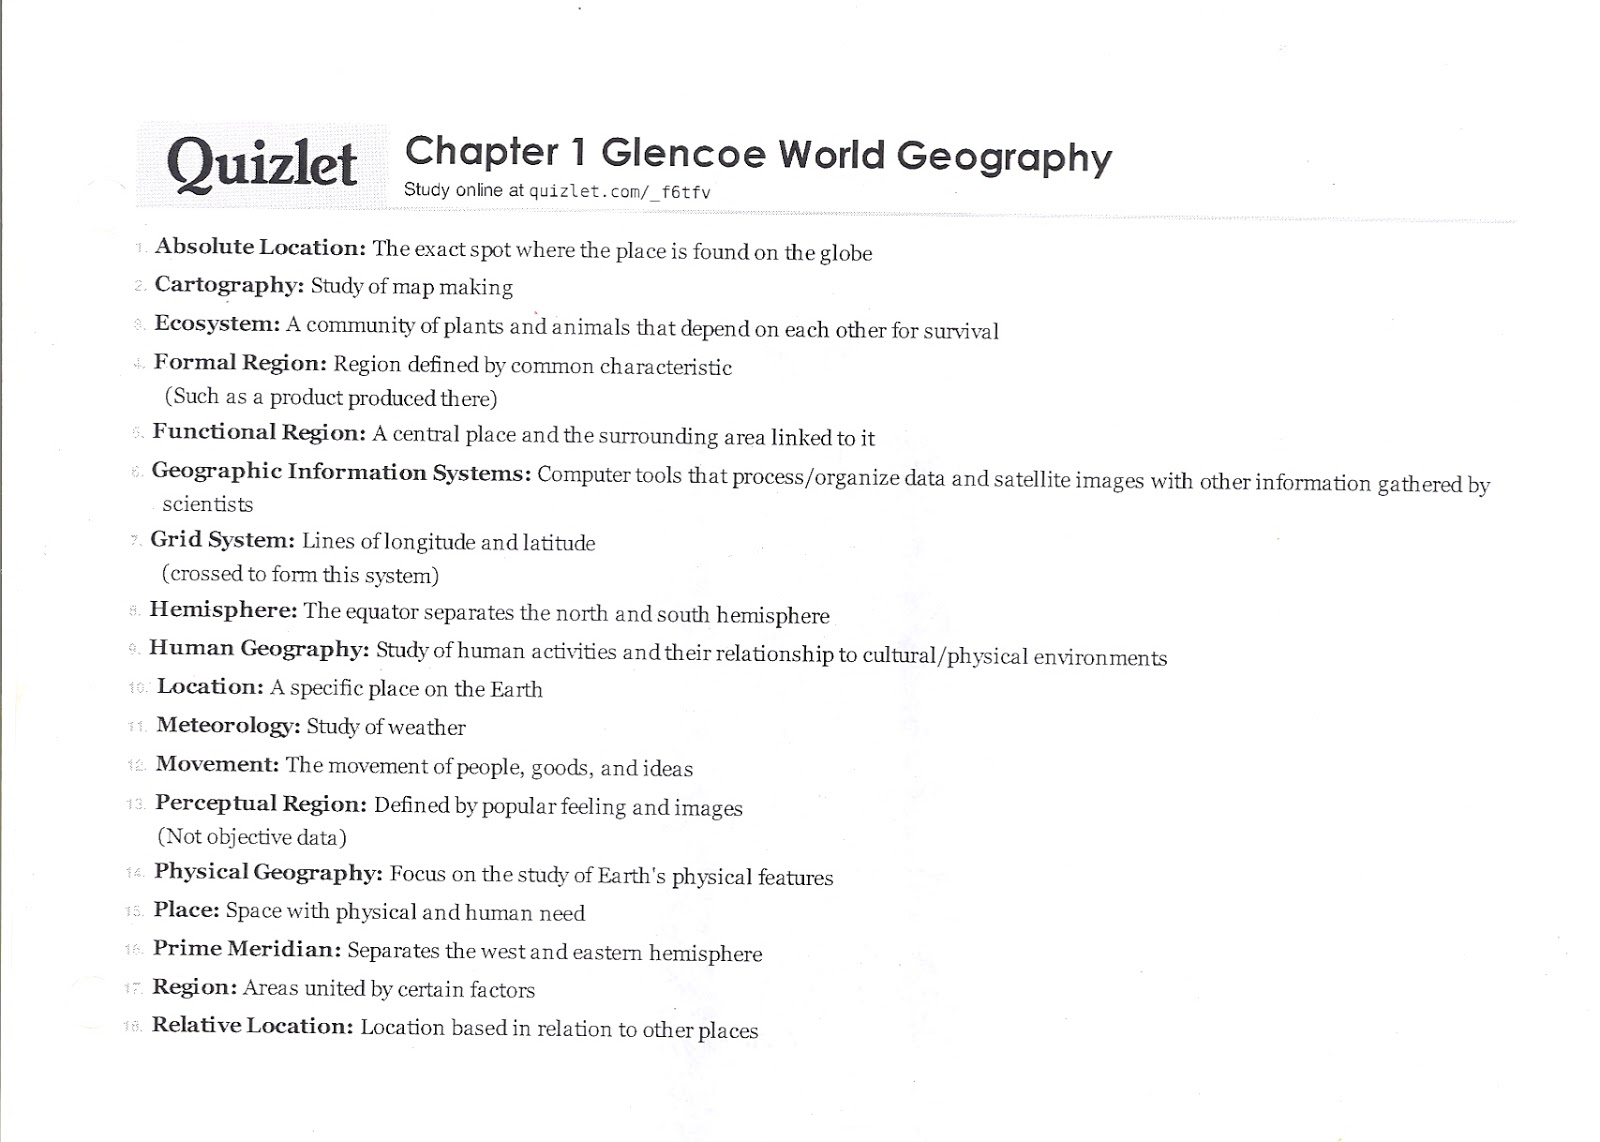 geography assignments The mrnussbaum world geography section features numerous interactive maps, activities and games, videos, research information, printables, and much more world games and activities this section is full of games that reinforce world geography, world biomes, animals, facts and more.